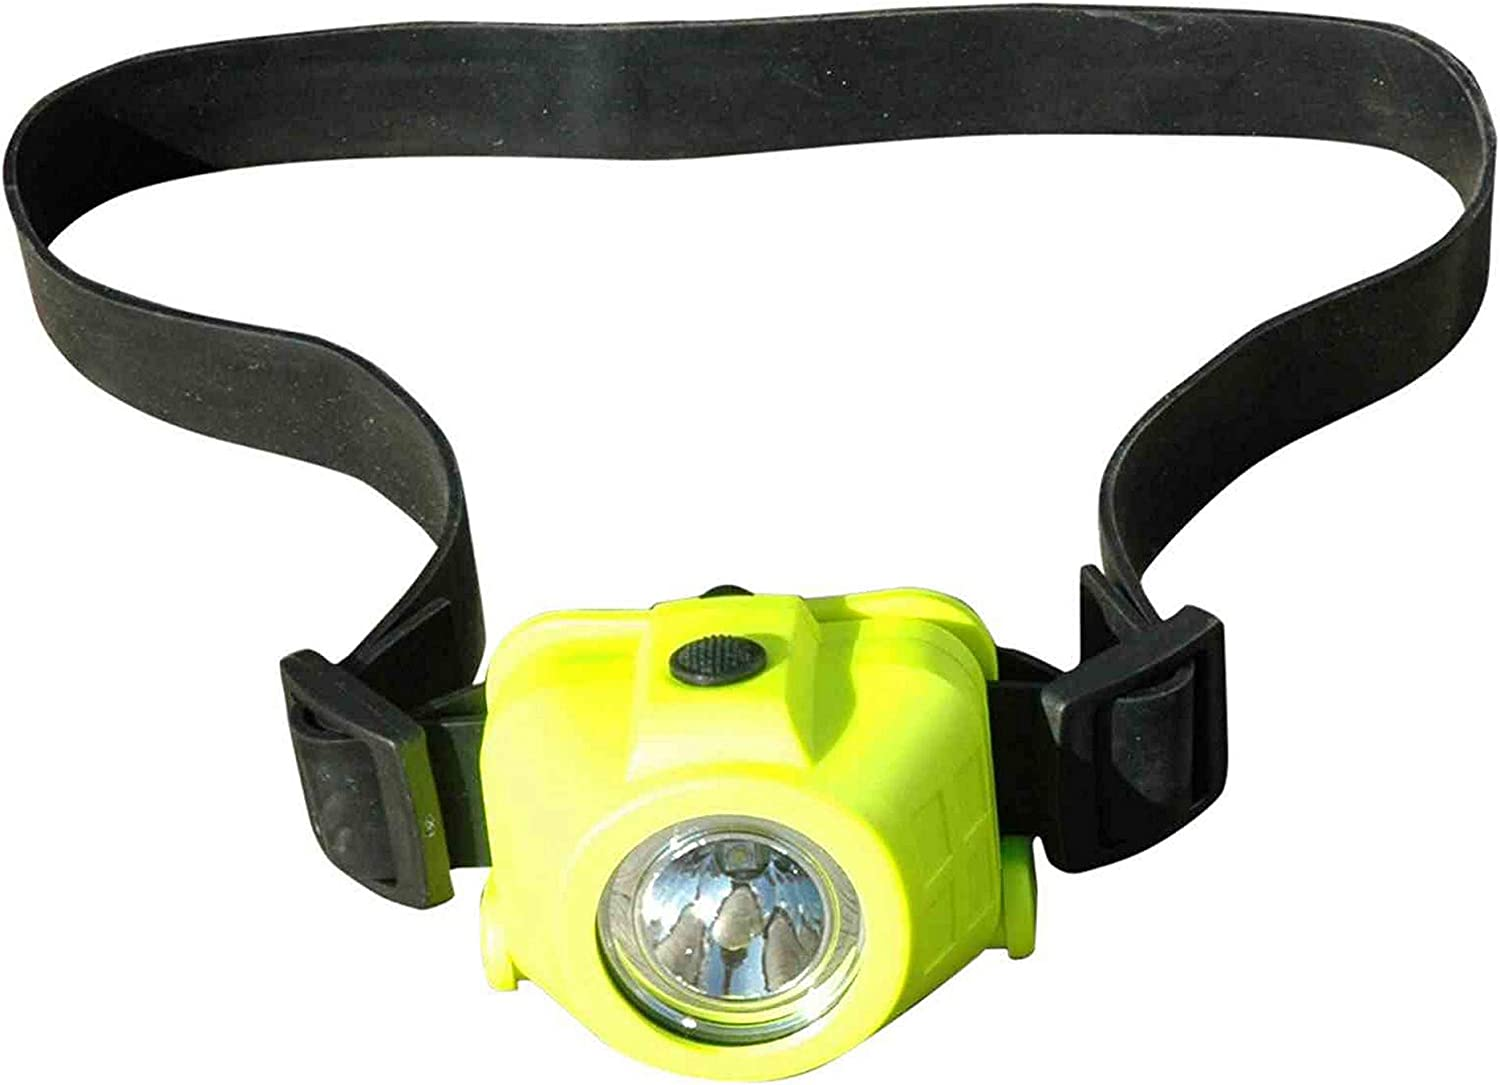 Explosion Proof Dual Function Headlight – Class 1 Division 1 Headlamp – High Low Spot Beams